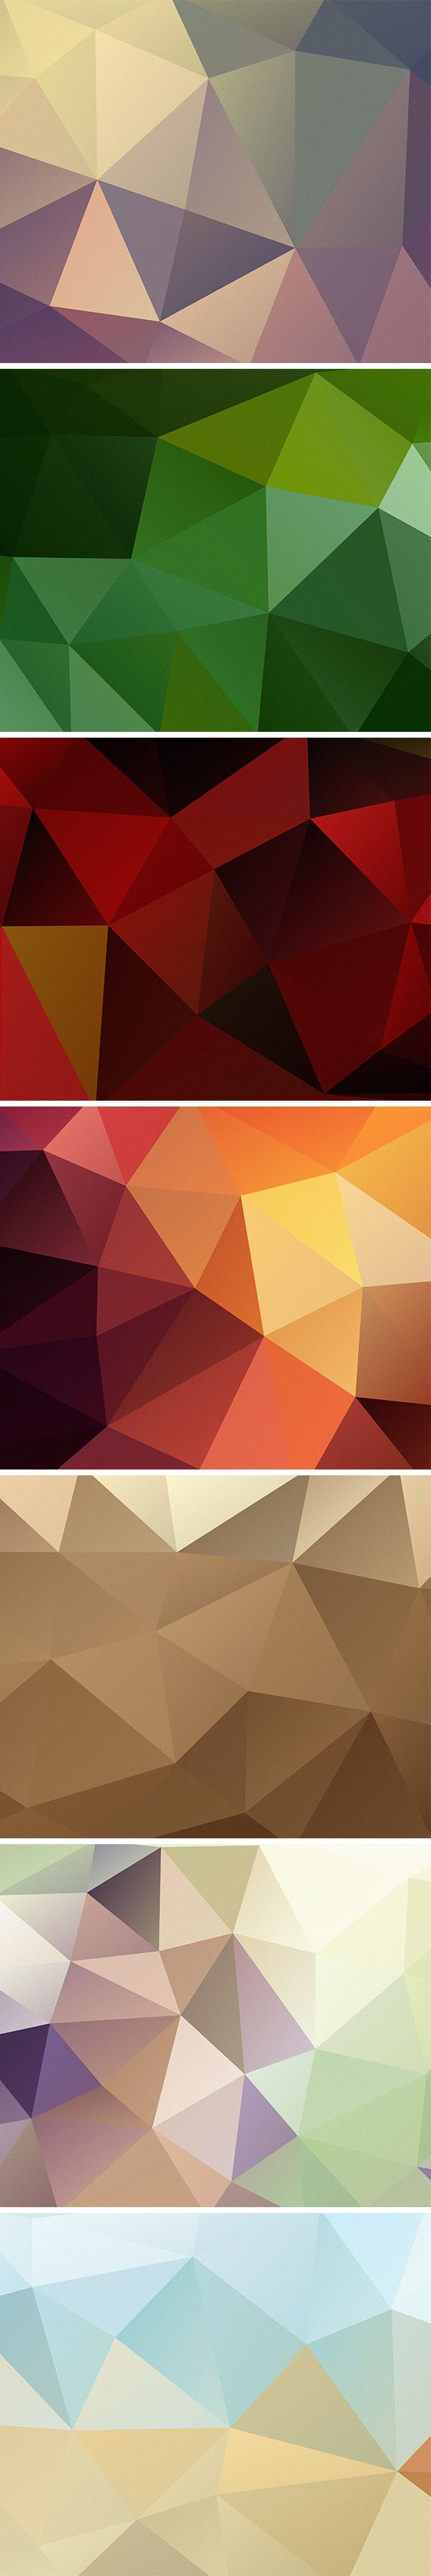 7 HD Polygon Backgrounds | GraphicBurger